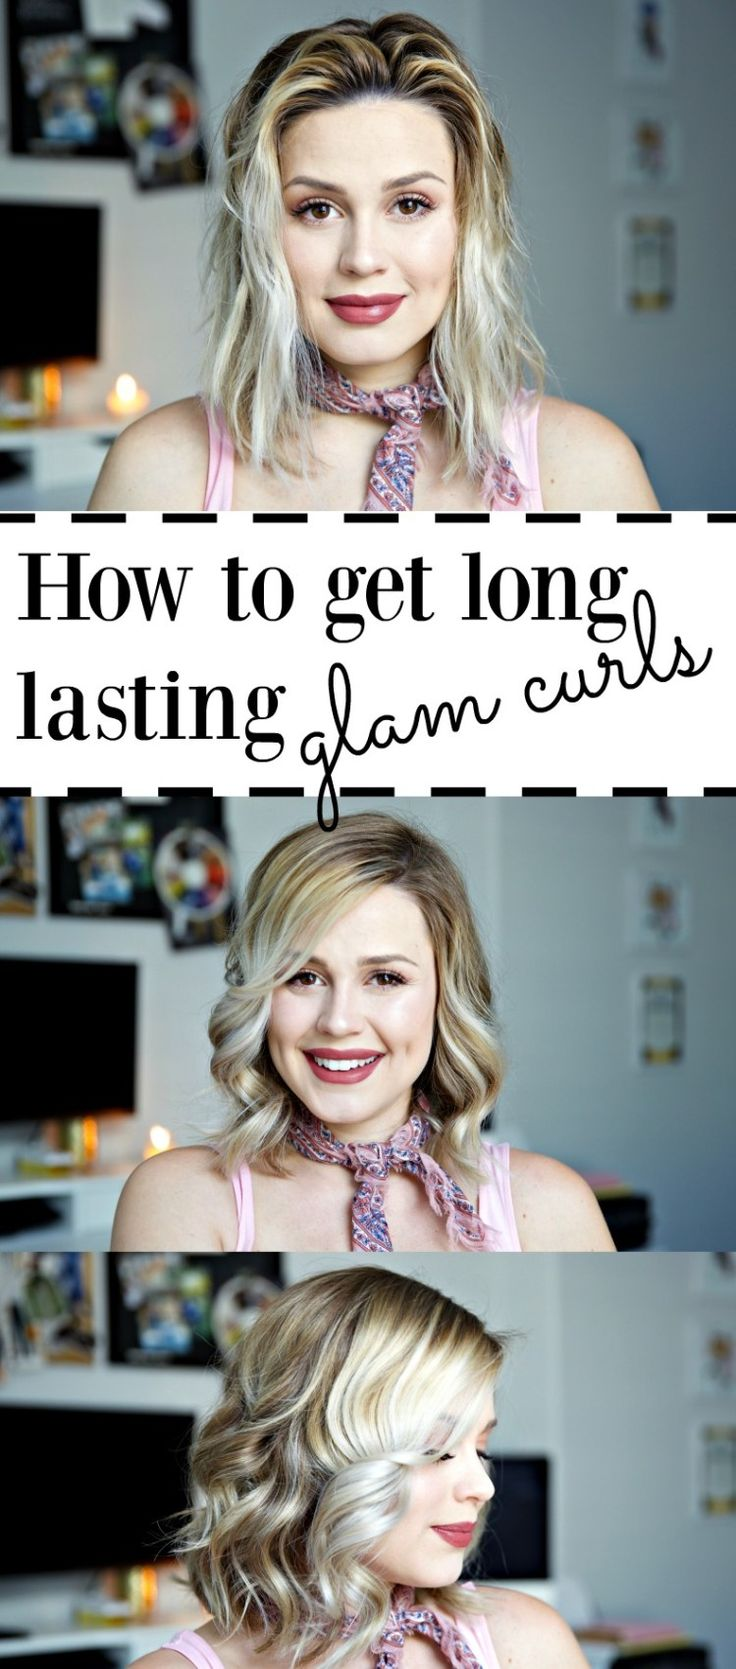 How to get glam curls   How to have long lasting curls   Bob curls   Easy curls   Uptown with Elly Brown